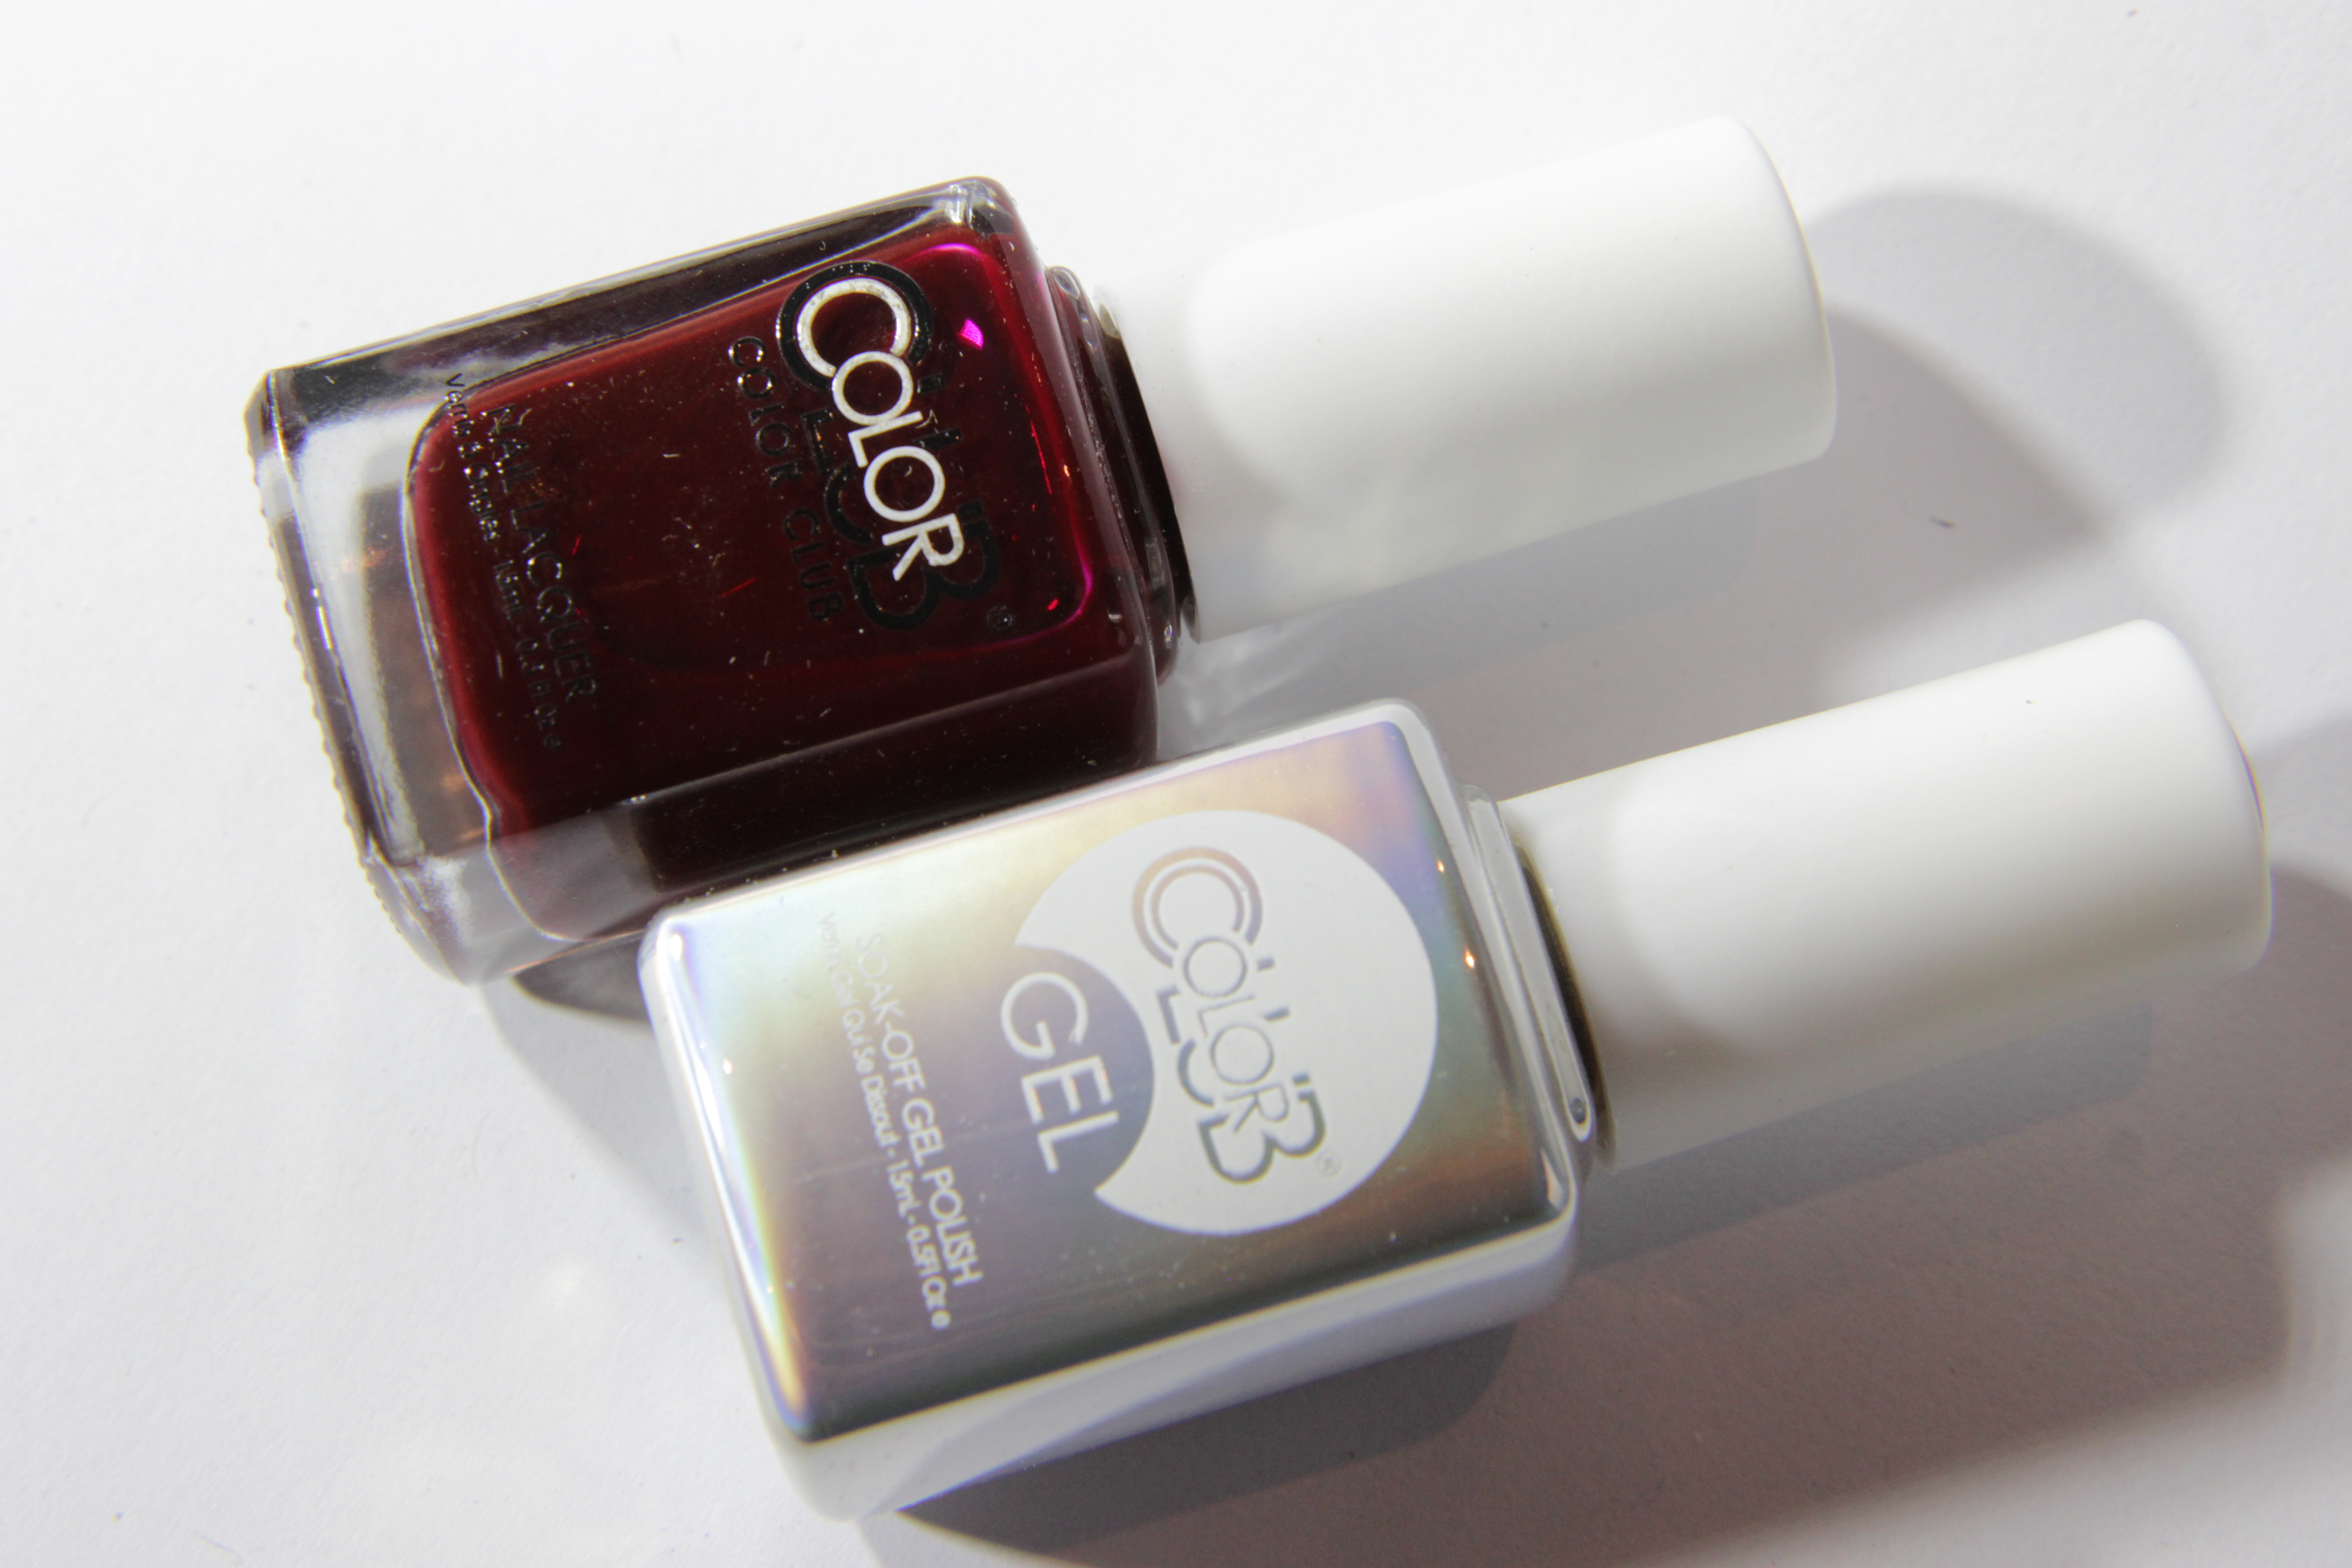 #0825 FEVERISH Color Club Duo Nagellack Nail Lacquer and Soak-Off Gel Polish dunkelrot